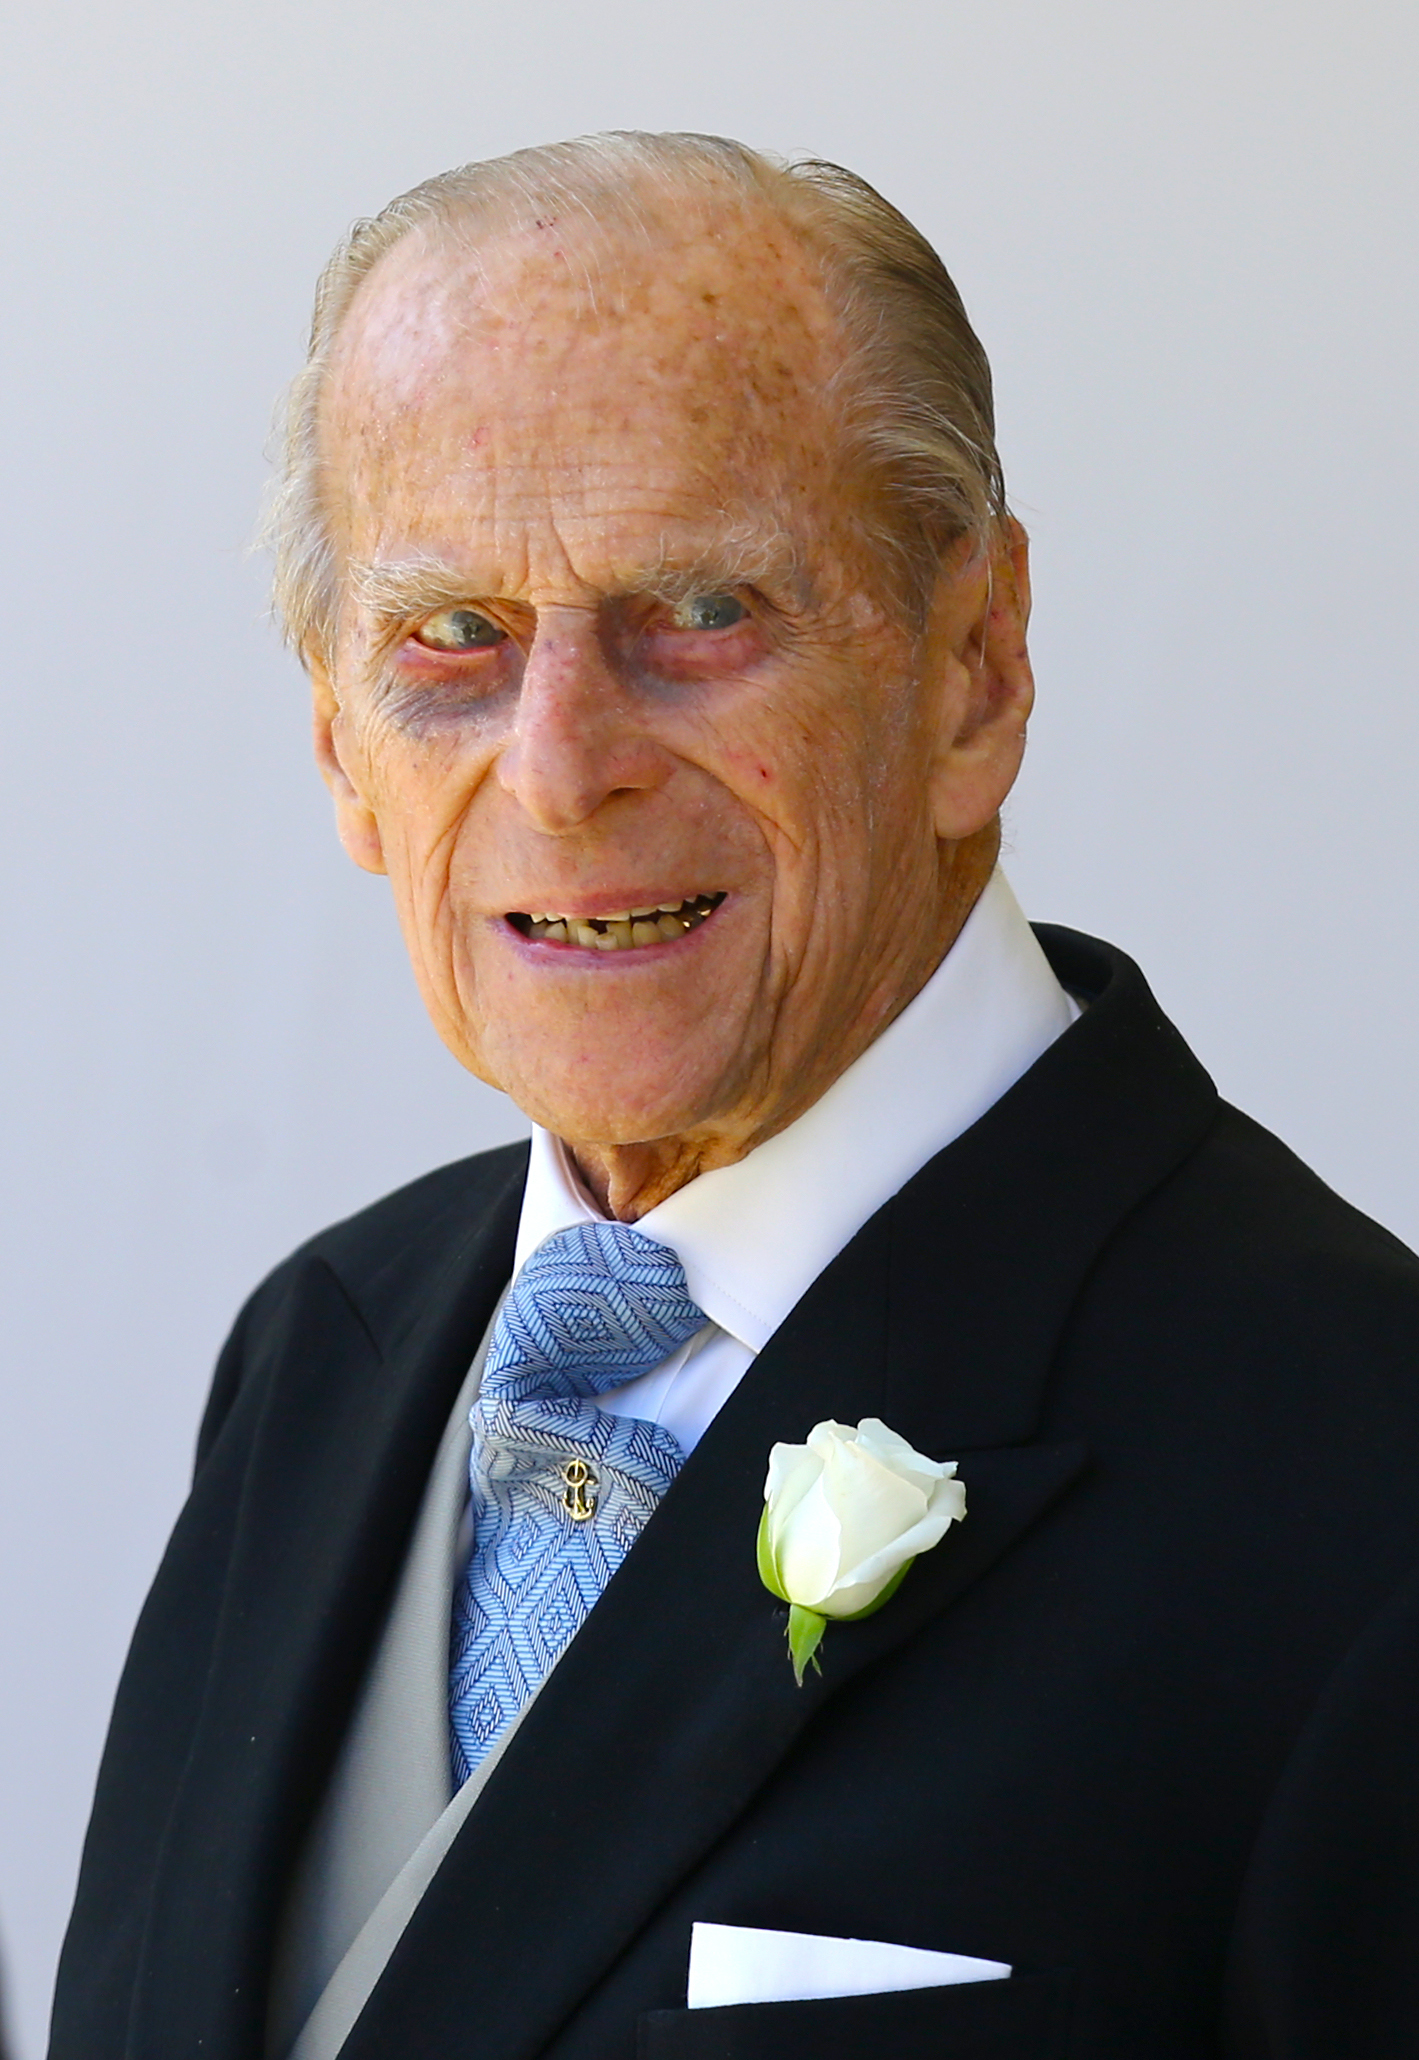 The exact contents of the call between Prince Philip and his grandson Prince William are not known (Source: Getty Images)